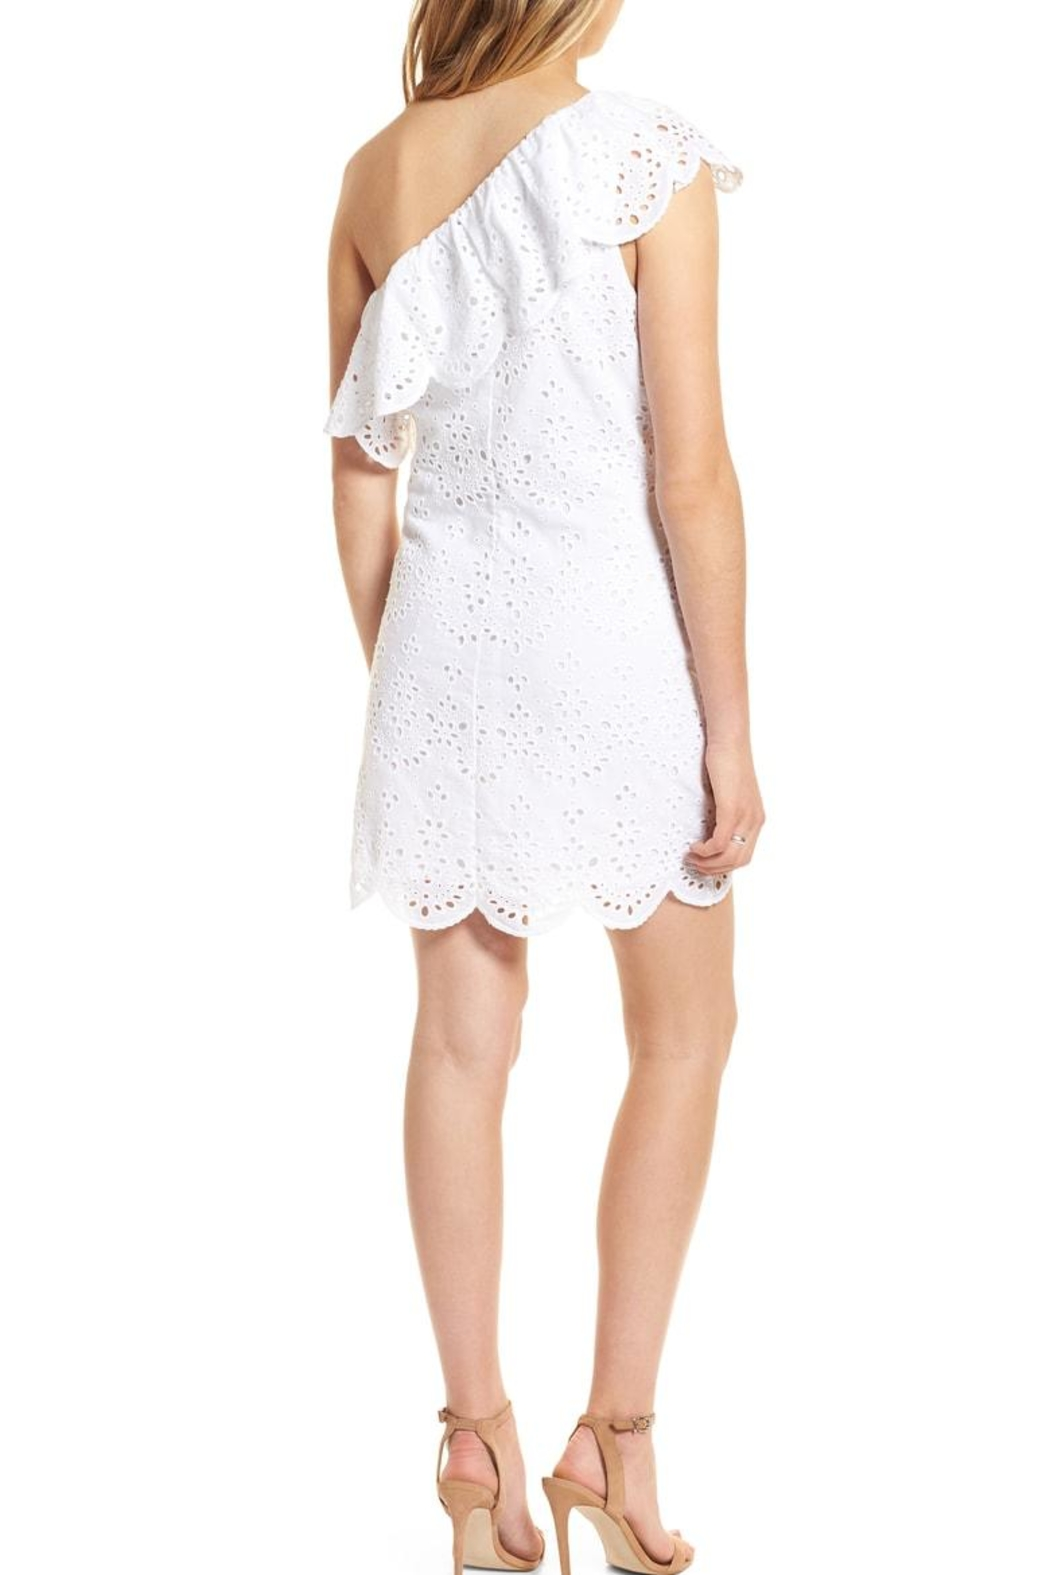 Cupcakes and Cashmere Cosmo Eyelet Dress - Front Full Image